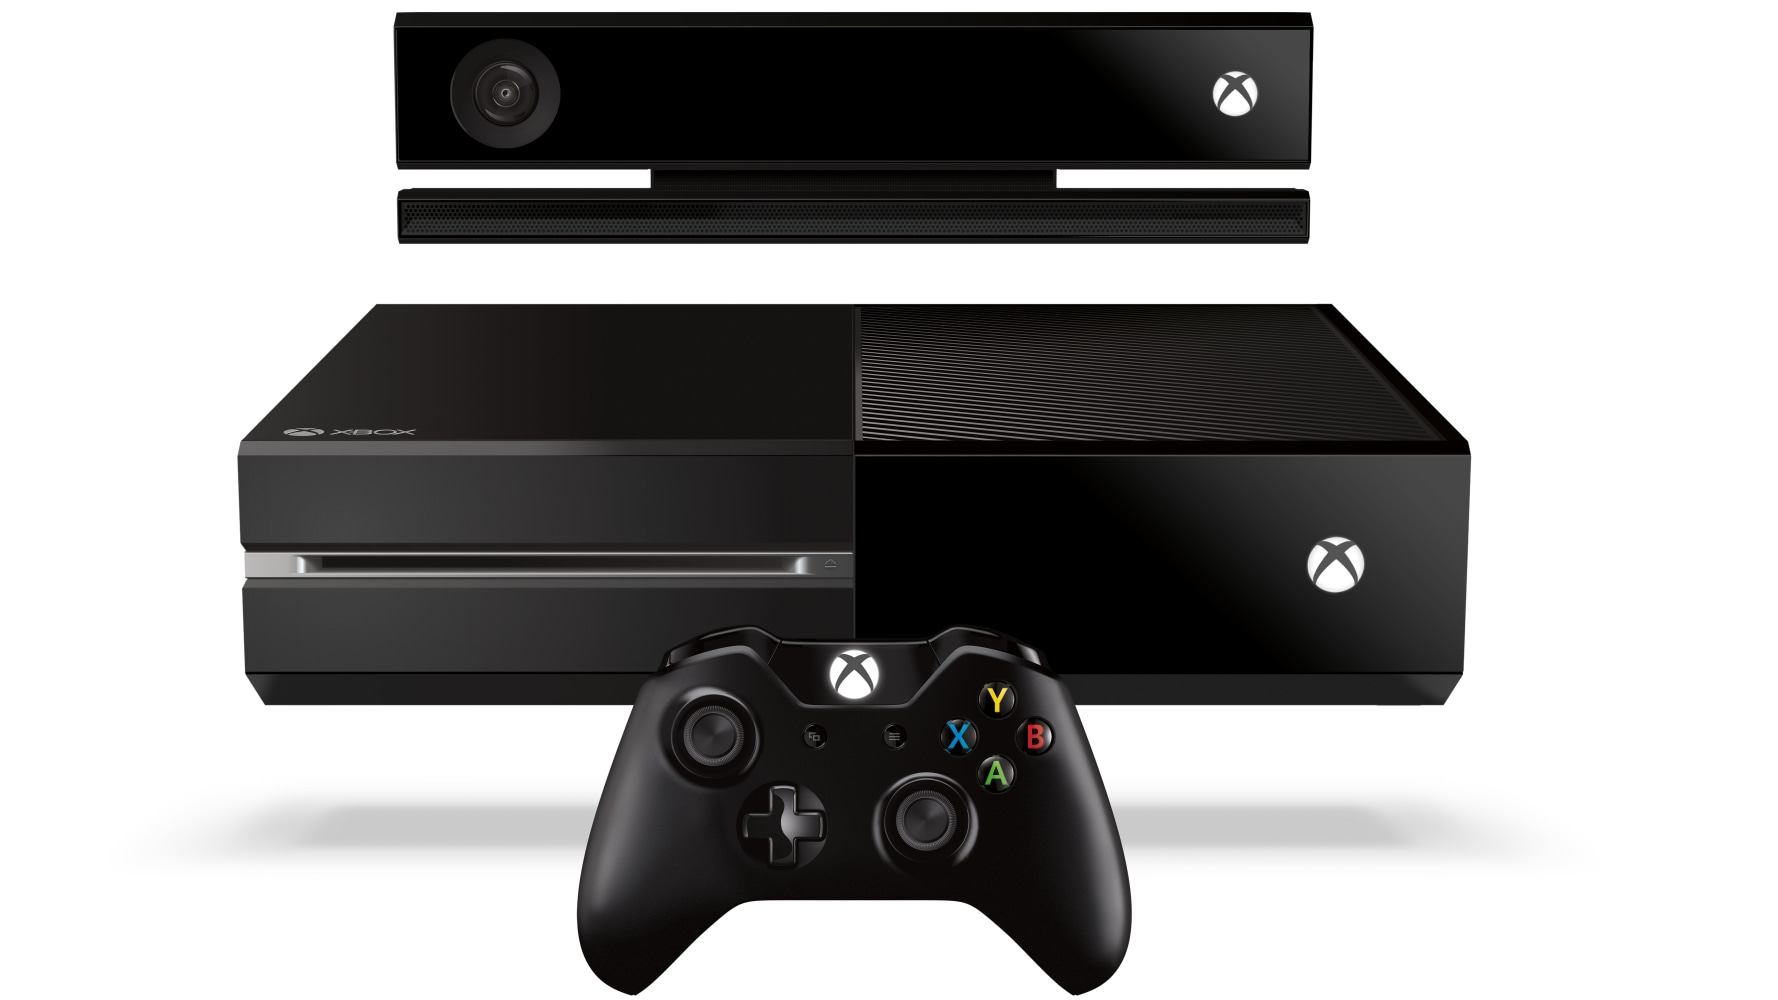 Microsoft: Yes, youCAN plug a PS4 into the Xbox One, but